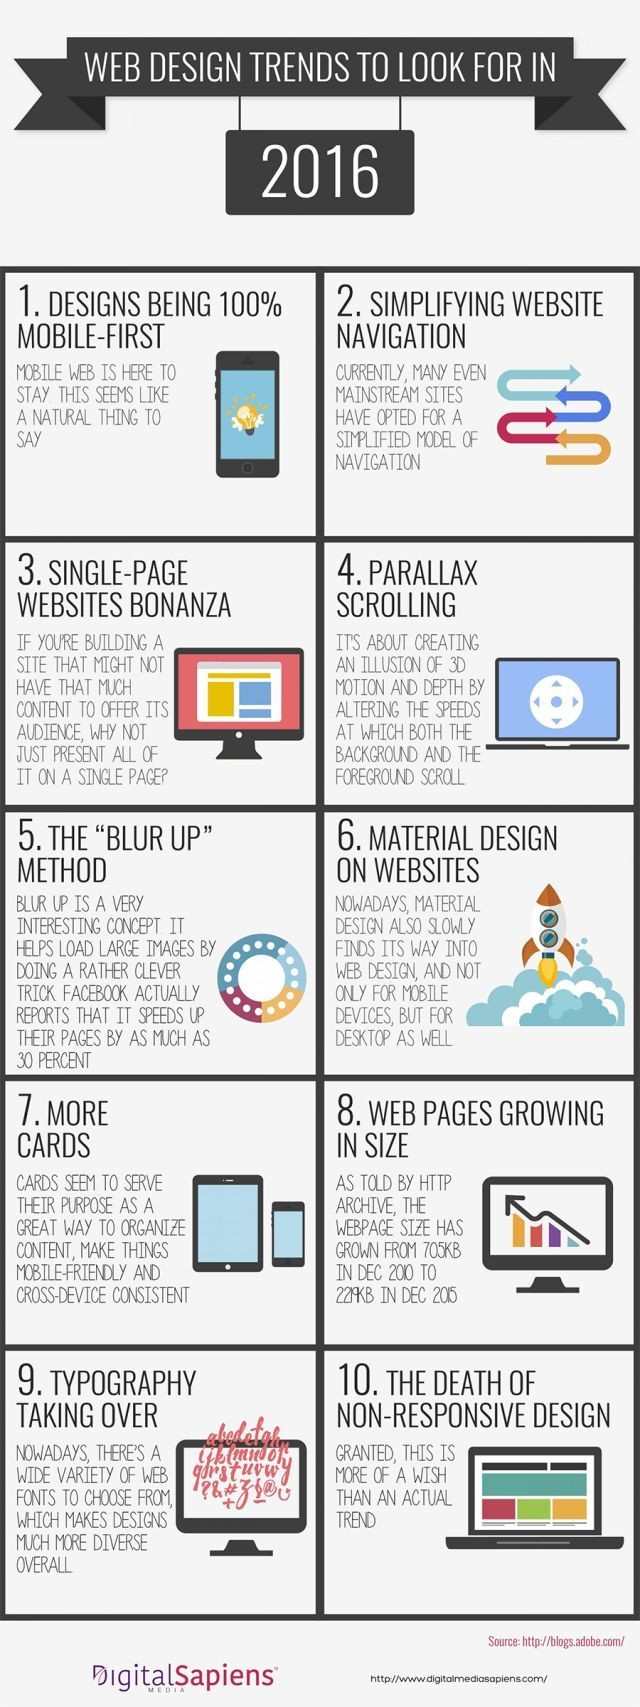 10 Web Design Trends You Need To Be Aware in 2016 #2016 #ecommercetrends #webdesign. If you like UX, design, or design thinking, check out theuxblog.com